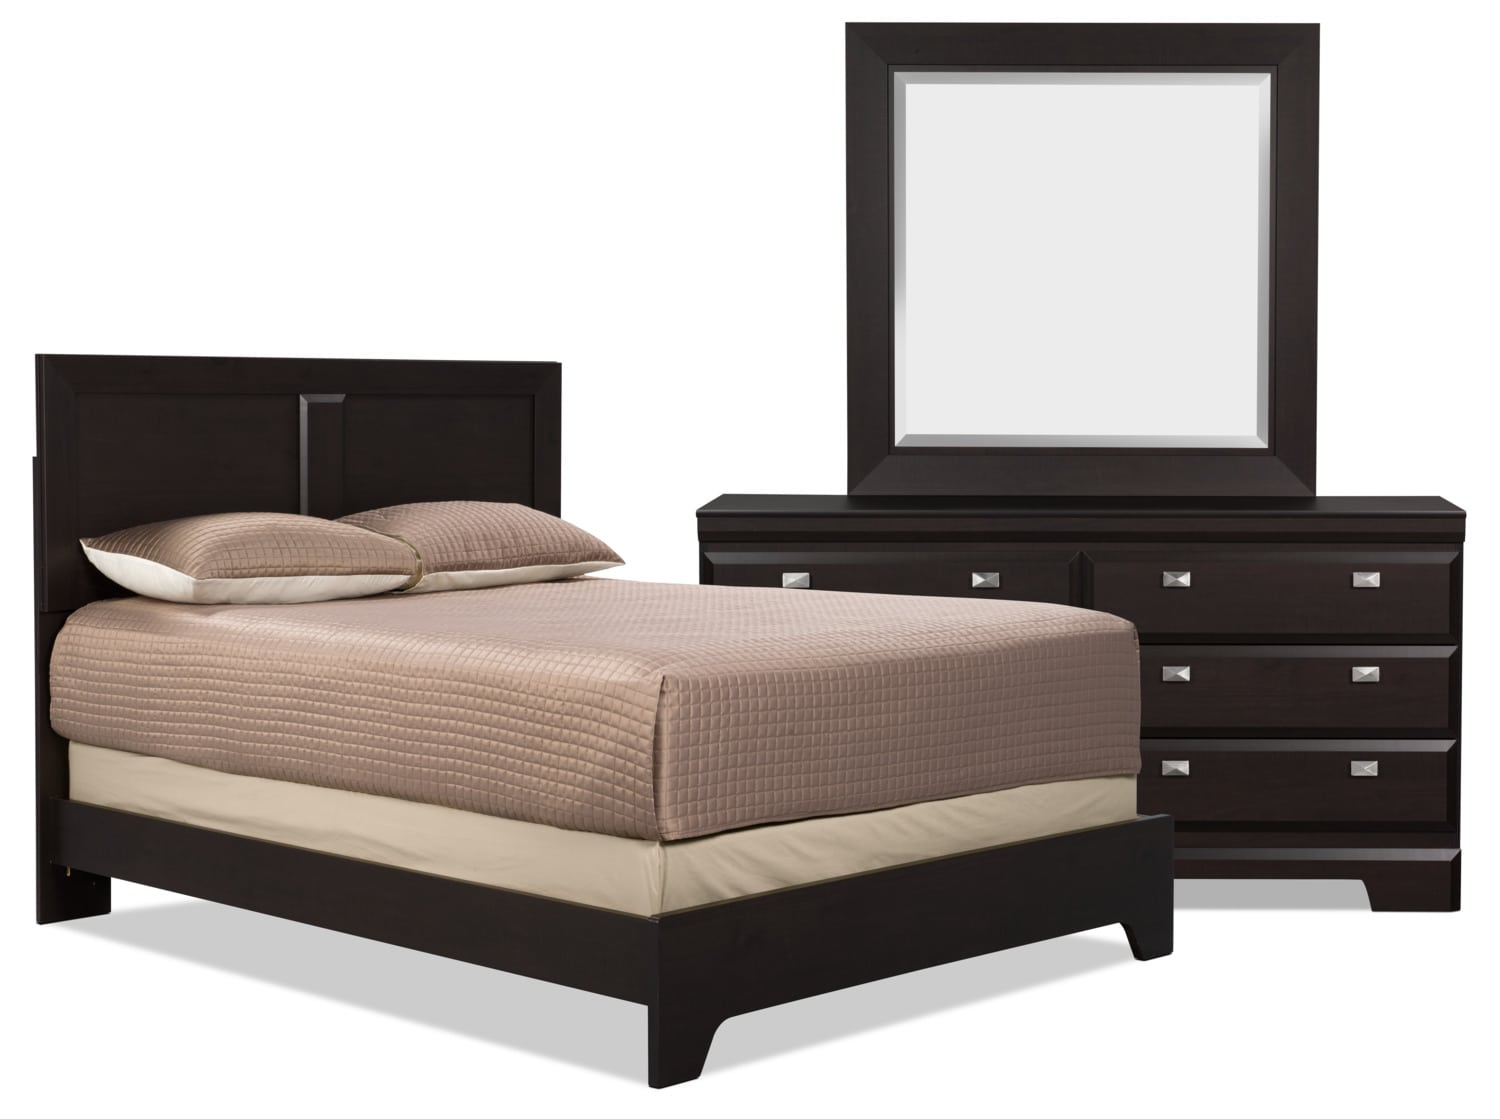 Bedroom Furniture - Yorkdale 5-Piece King Bedroom Package